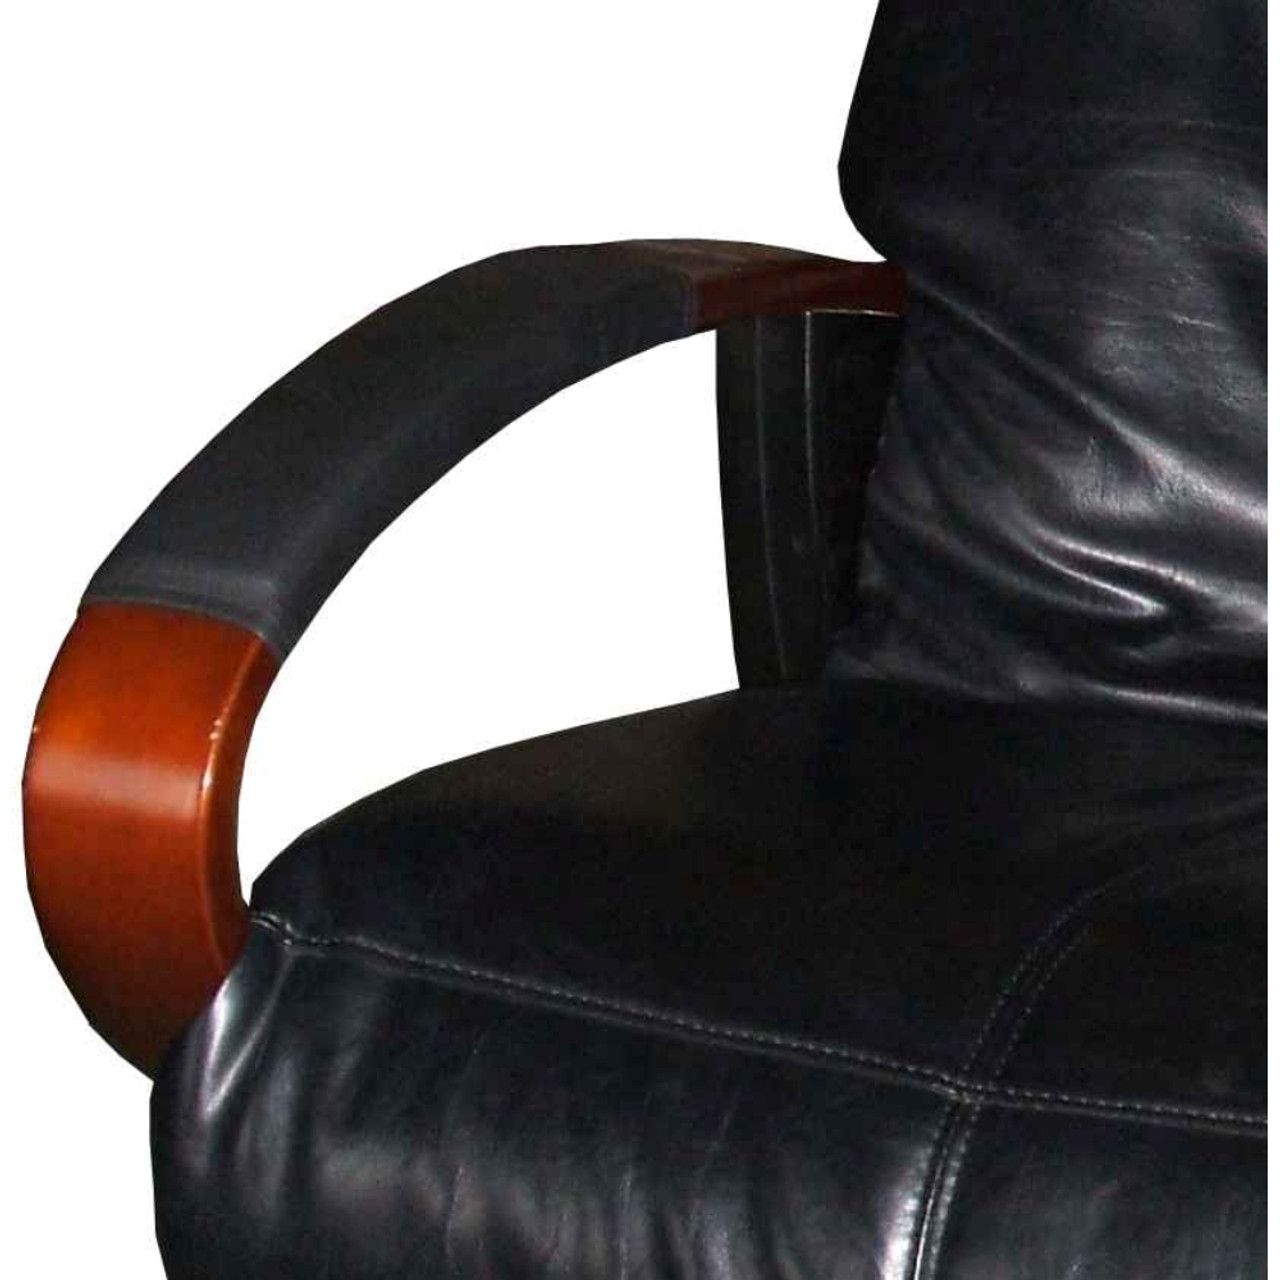 Fit Chair Ergo360 Custom Armrest Covers Restore Cushion And Protect Chair Armrests